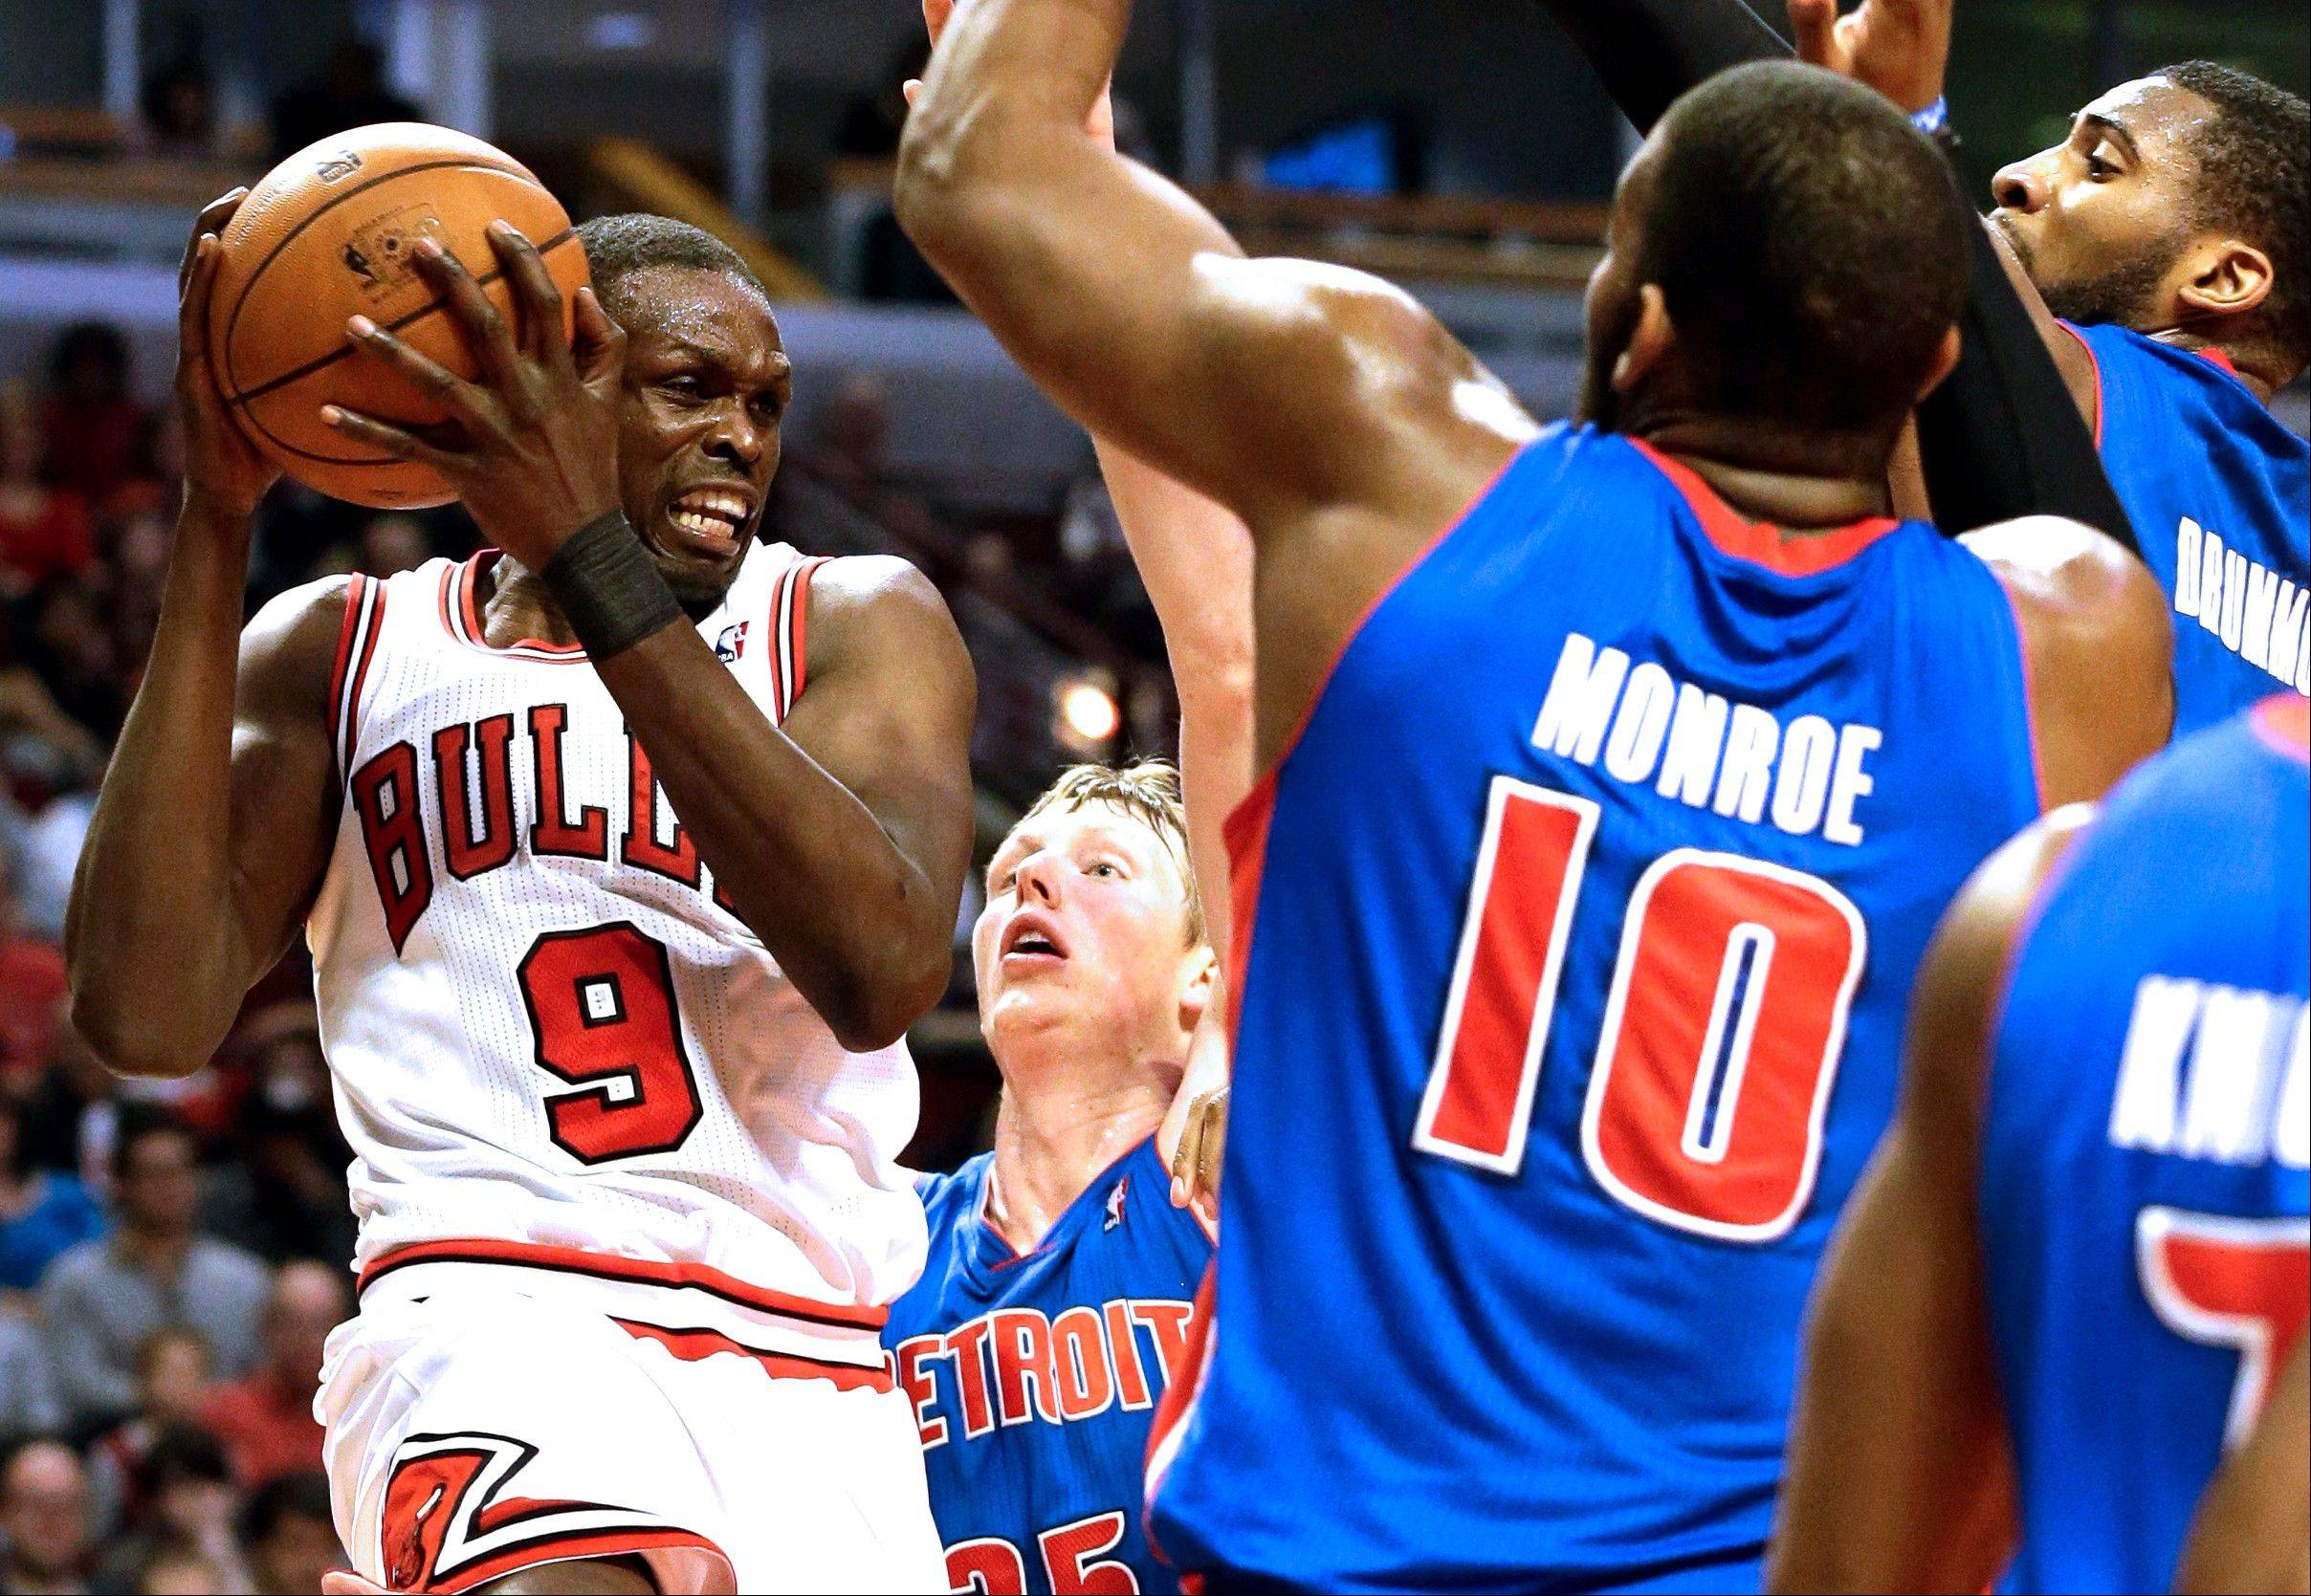 Luol Deng drives to the basket Sunday night on his way to 28 points in the Bulls' victory over the Pistons.